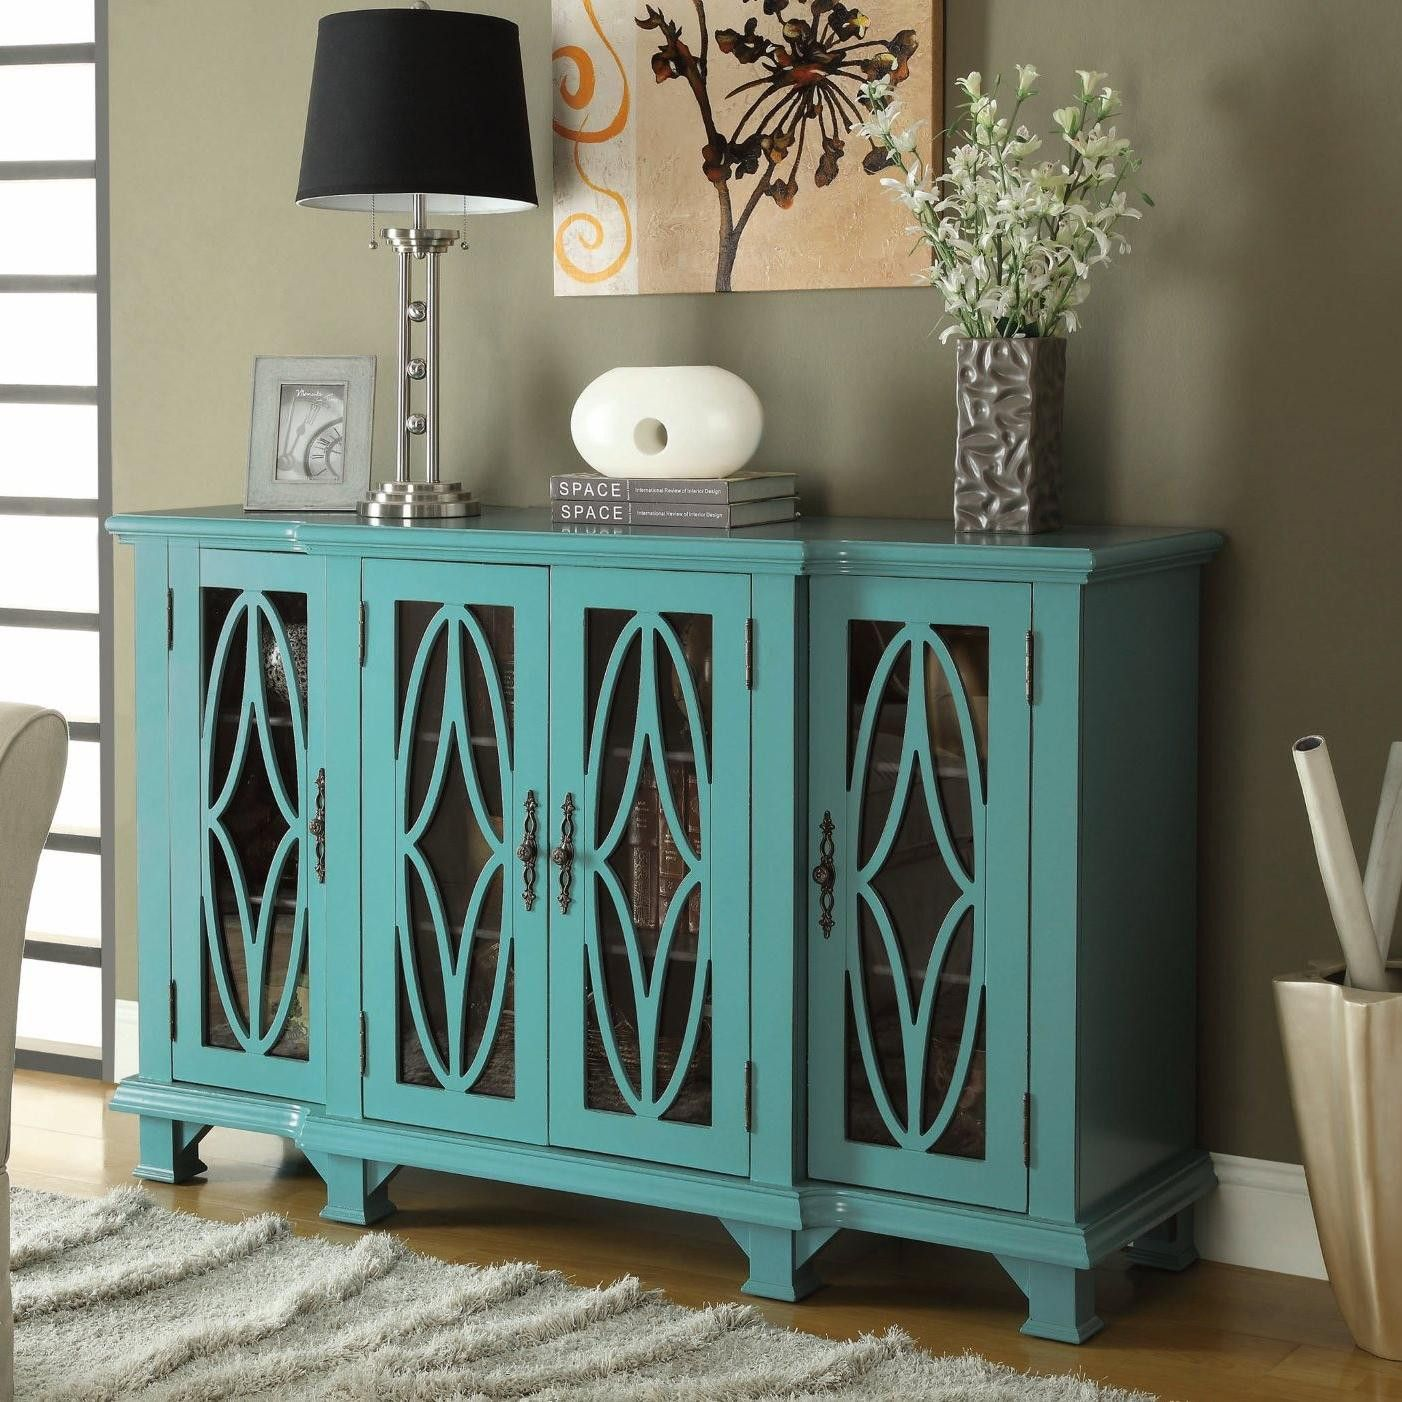 Apotime Console Cabinet Accent Cabinet With Glass Doors Cool